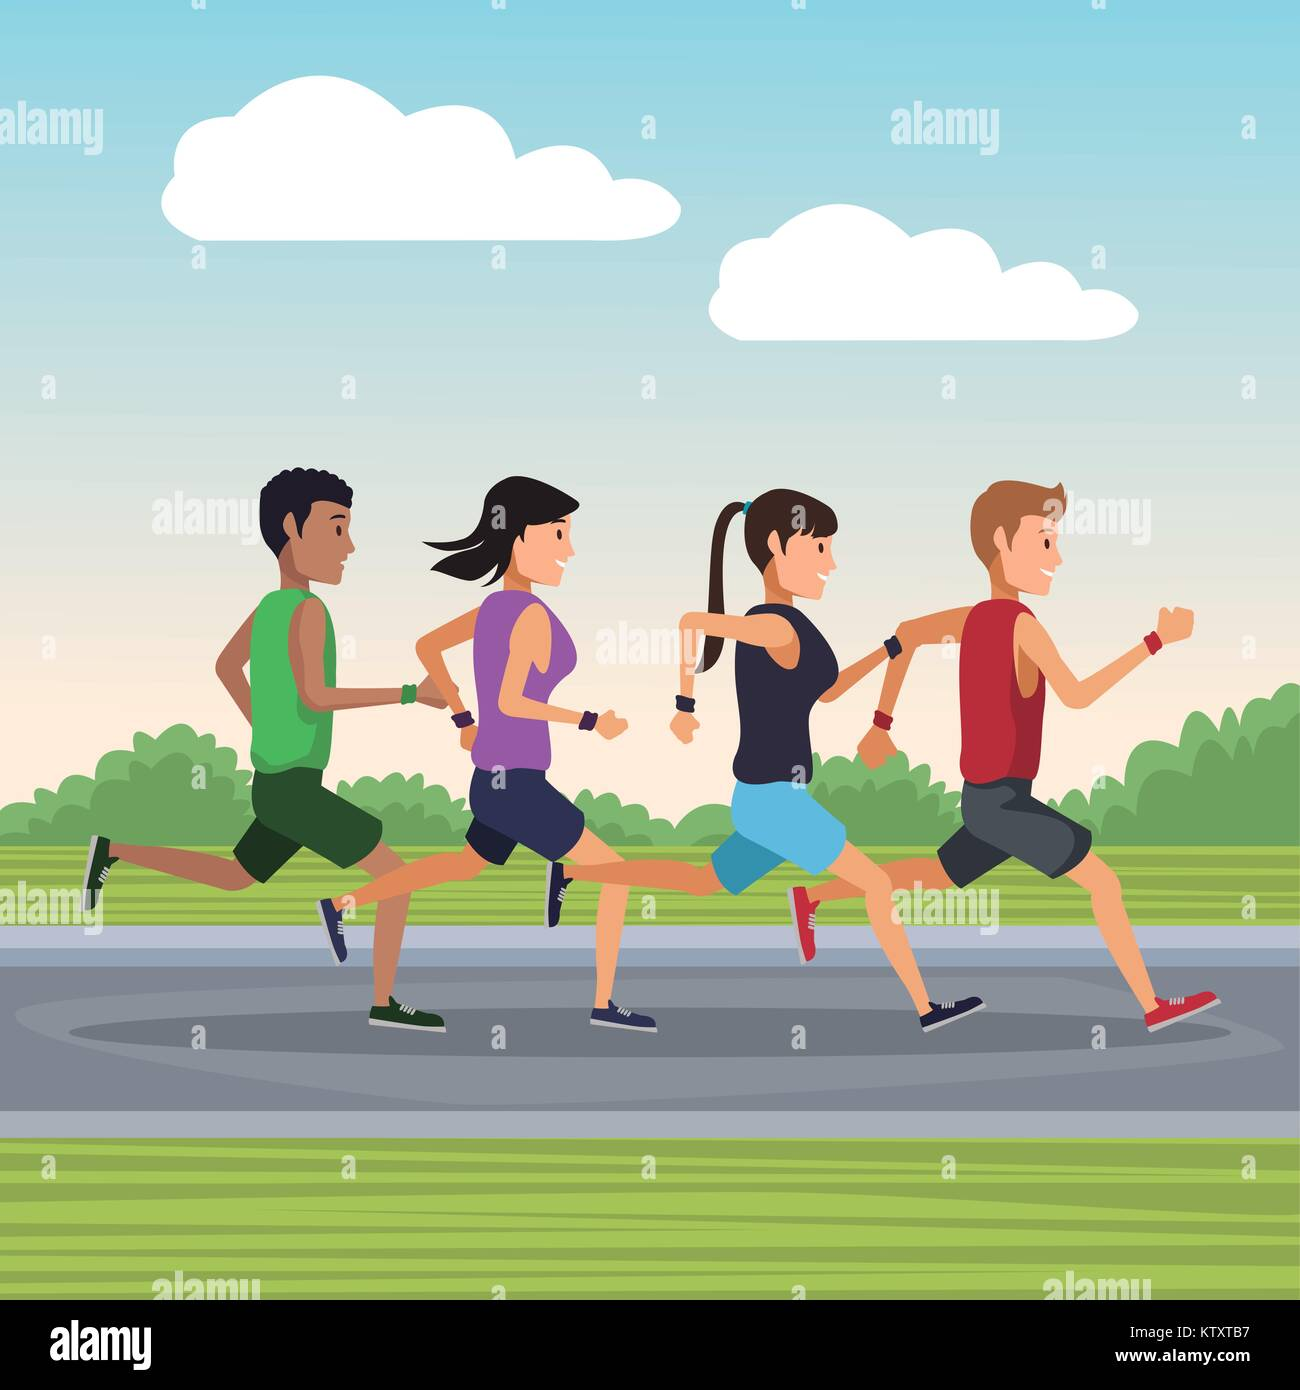 People running outside - Stock Vector